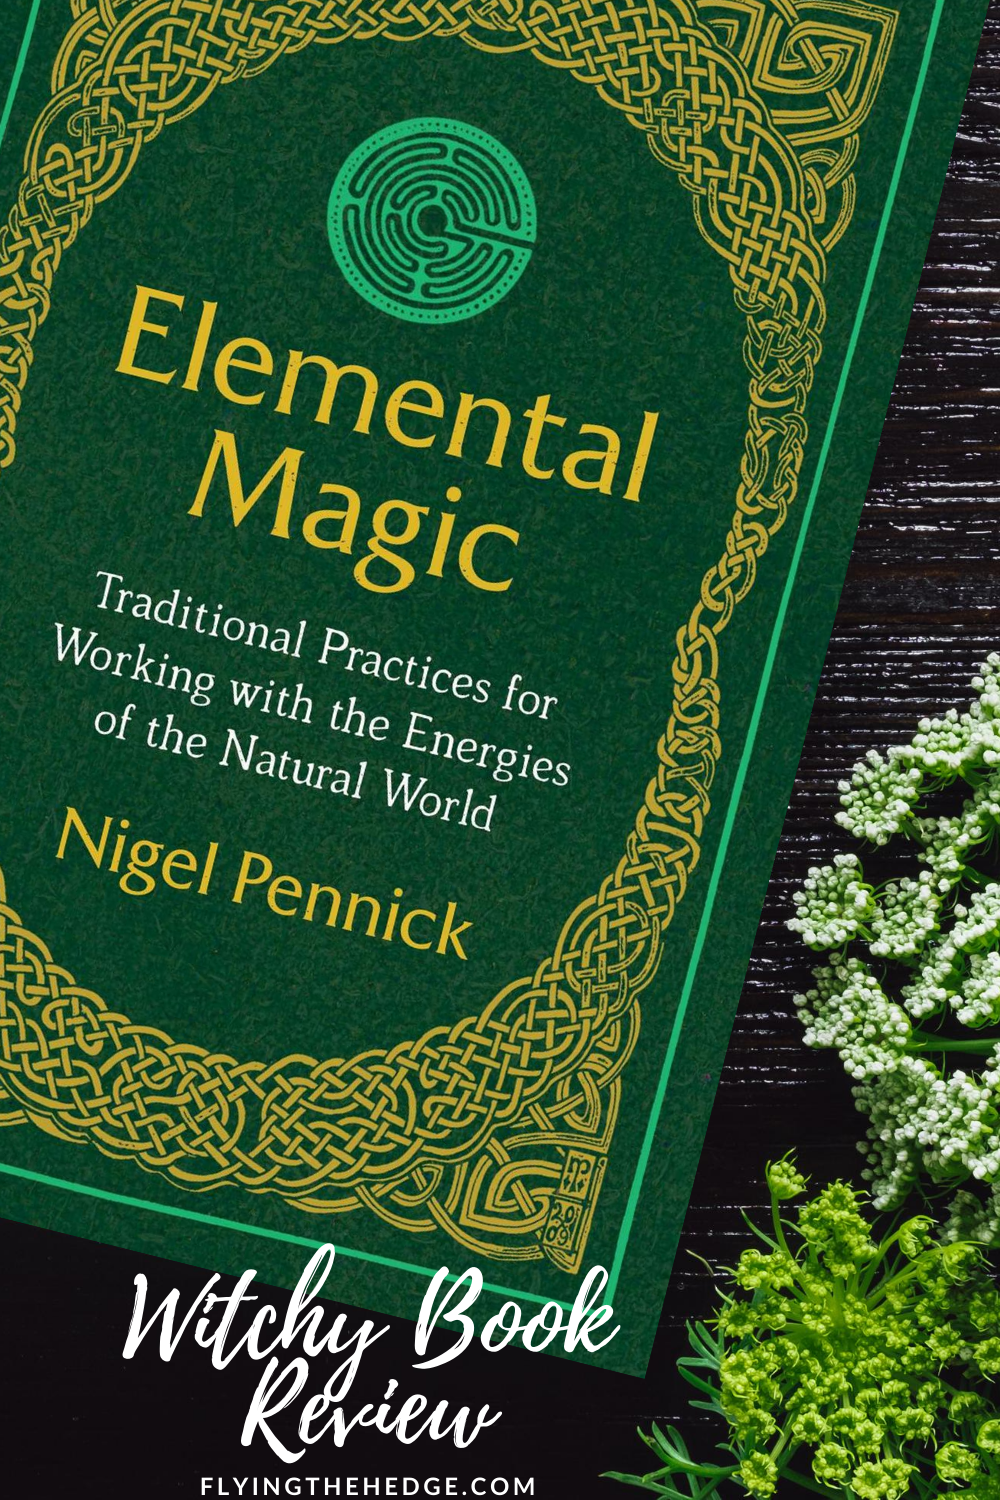 book review, witchy book review, elemental magic, Nigal Pennick, witchcraft, wicca, wiccan, witch, witchy, book, reading, pagan, neopagan